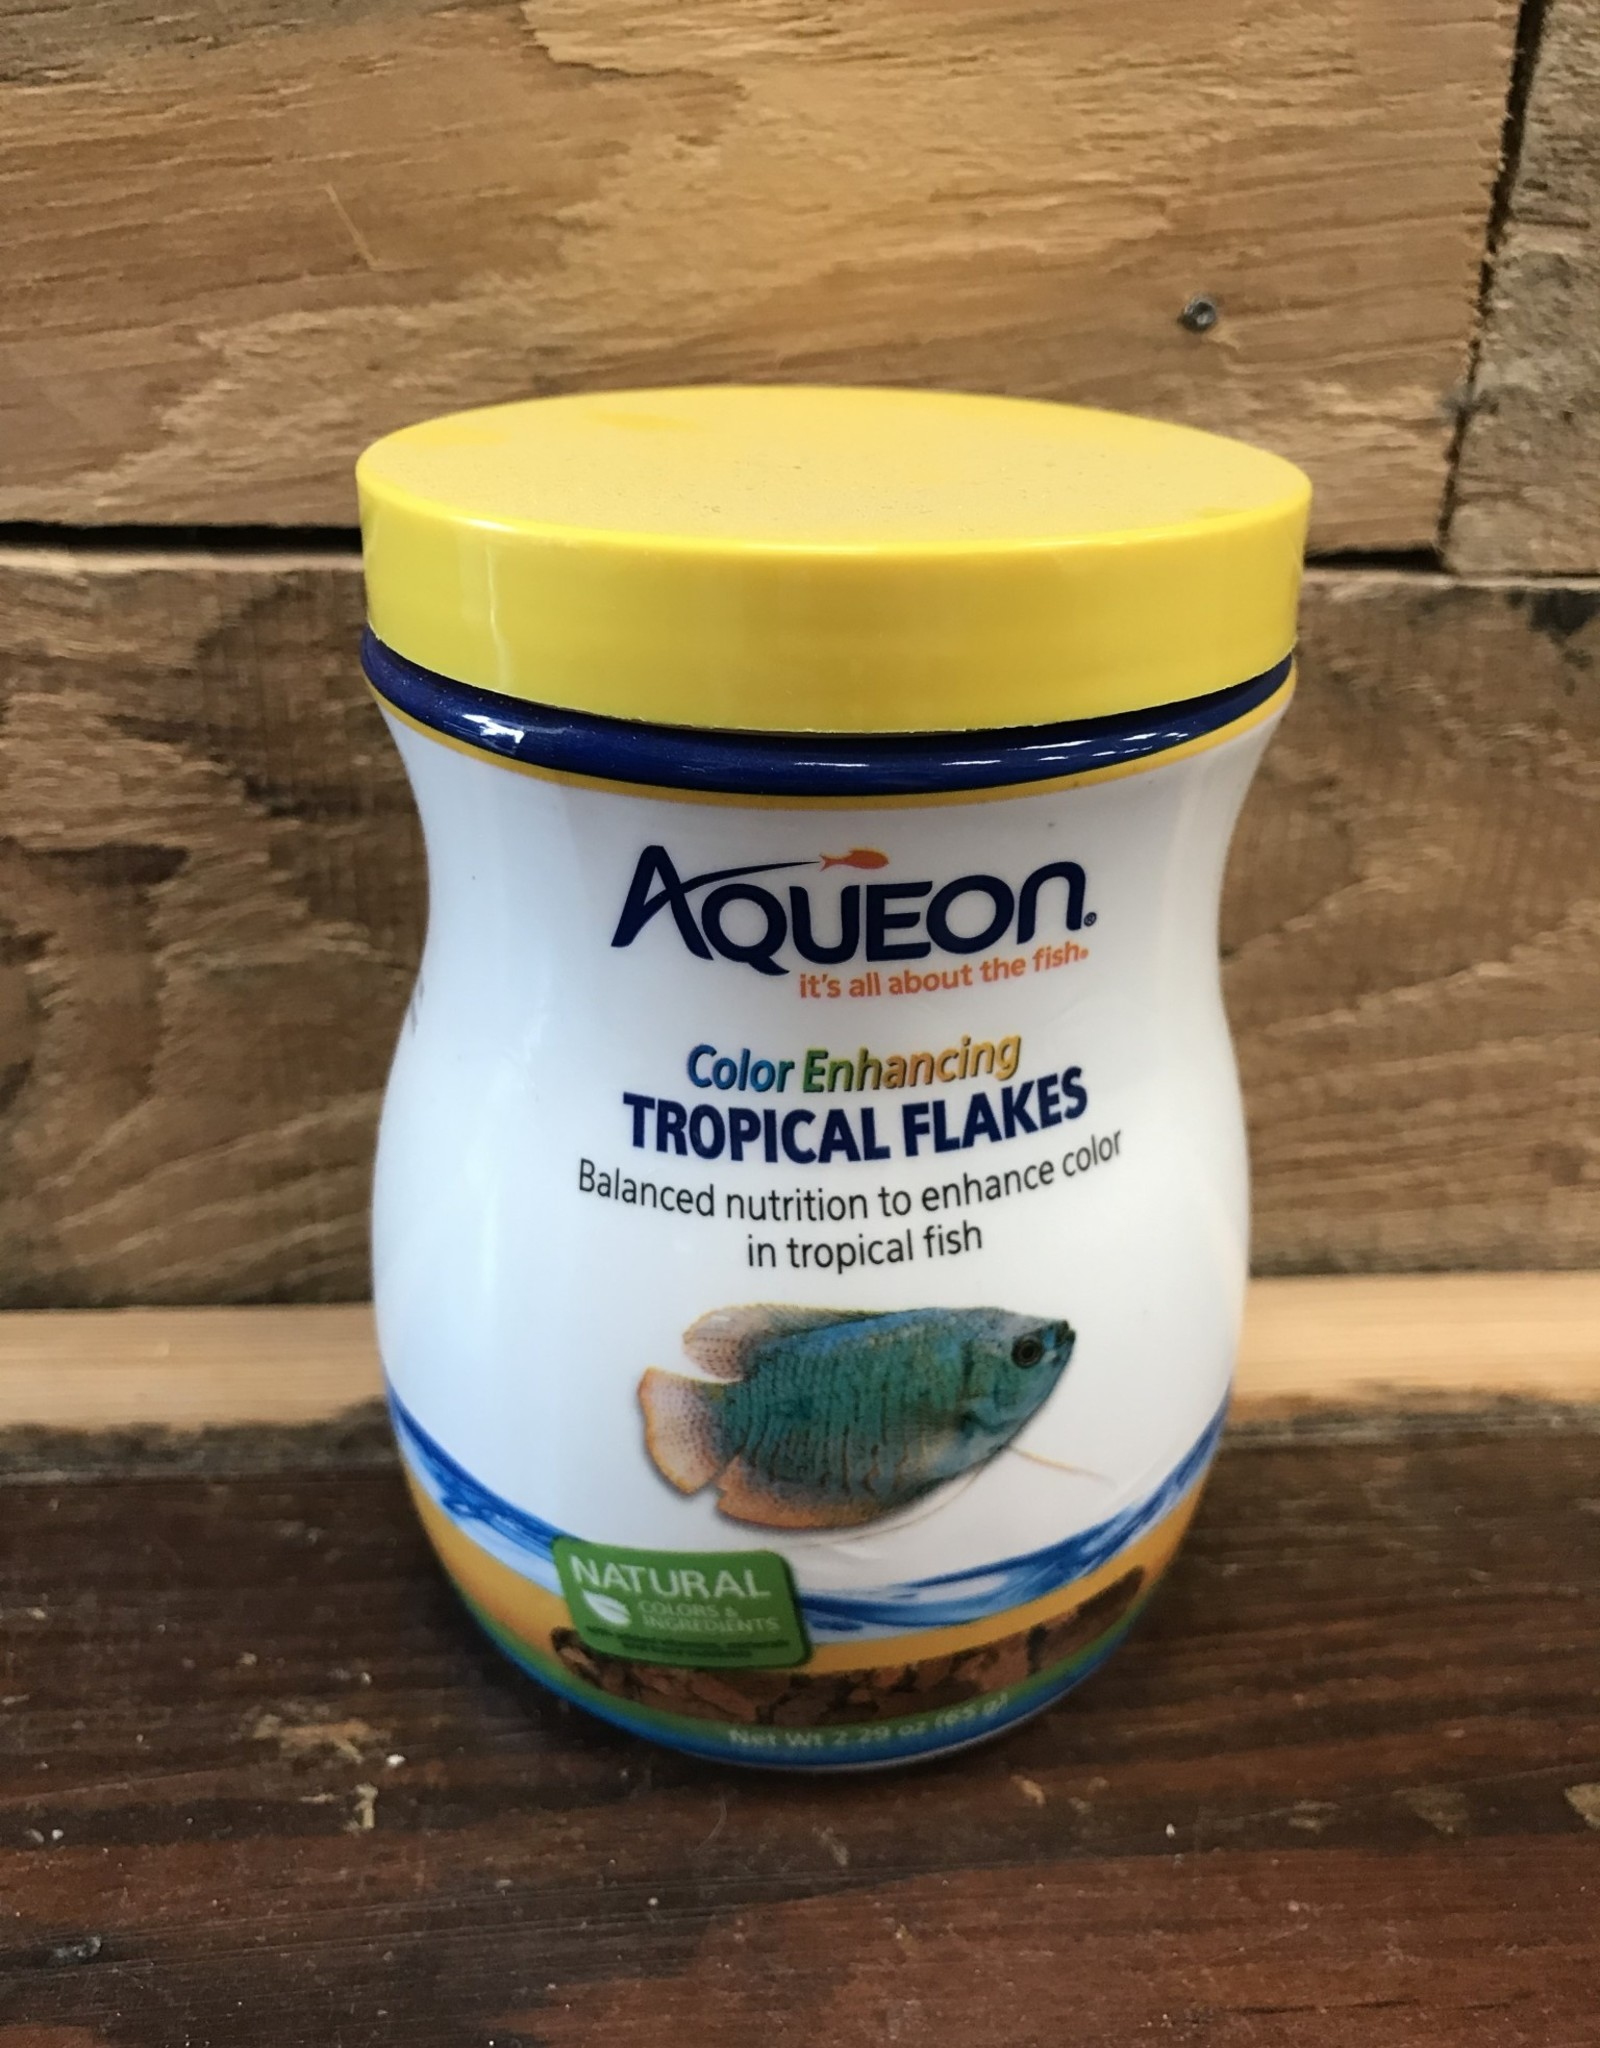 Aqueon Aqueon 2.29 OZ. TROPICAL COLOR FLAKES